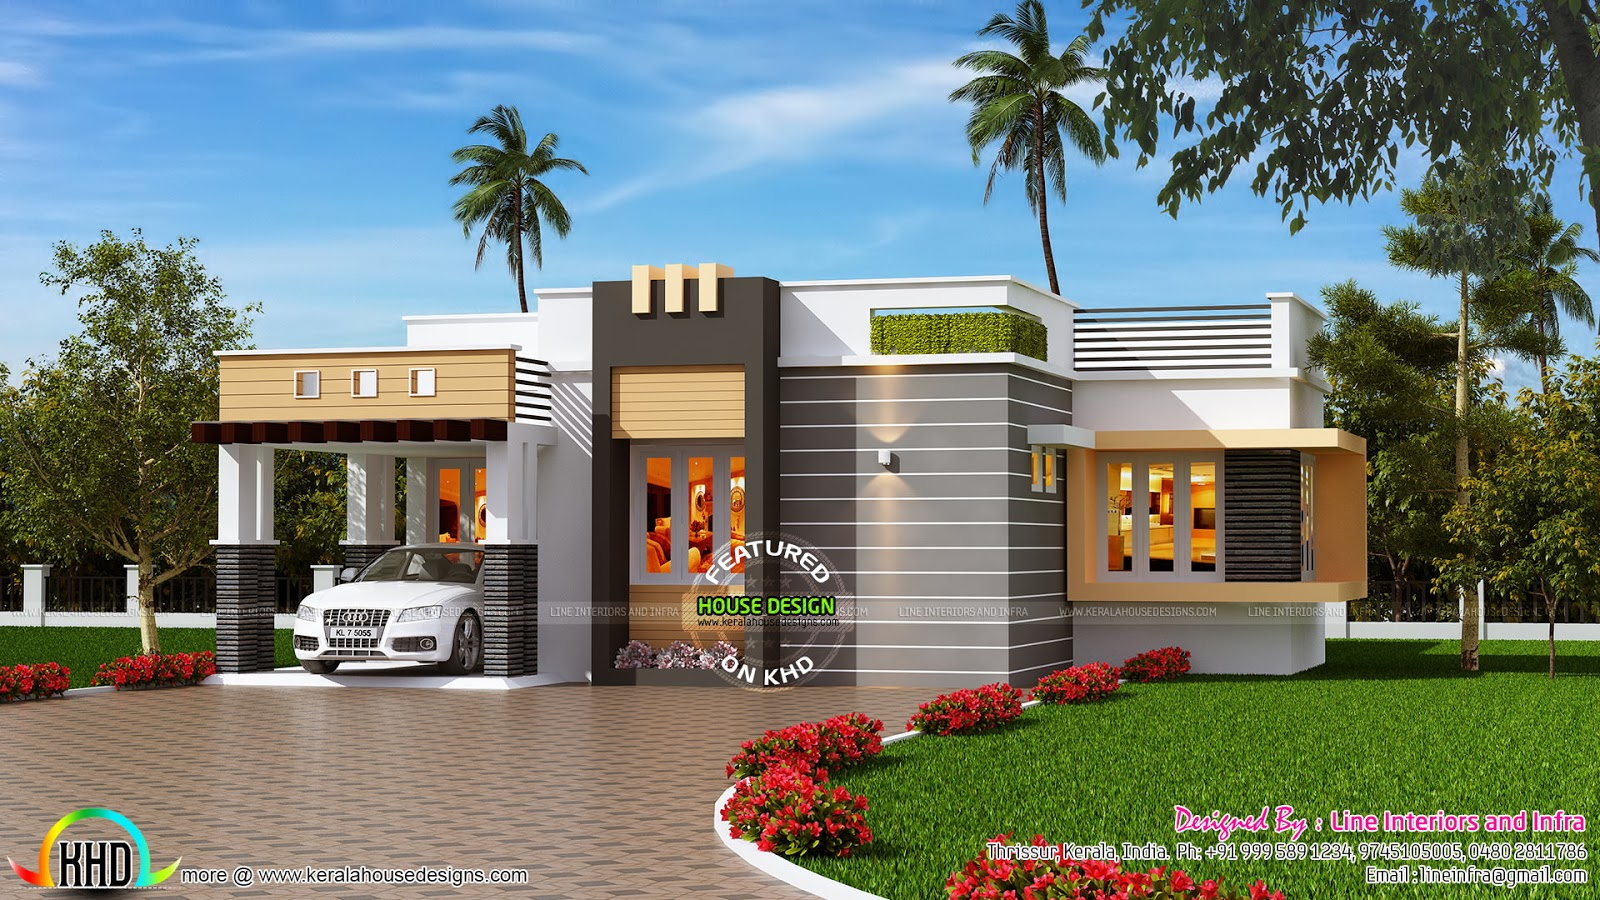 Ft contemporary style small house kerala home design and floor plans